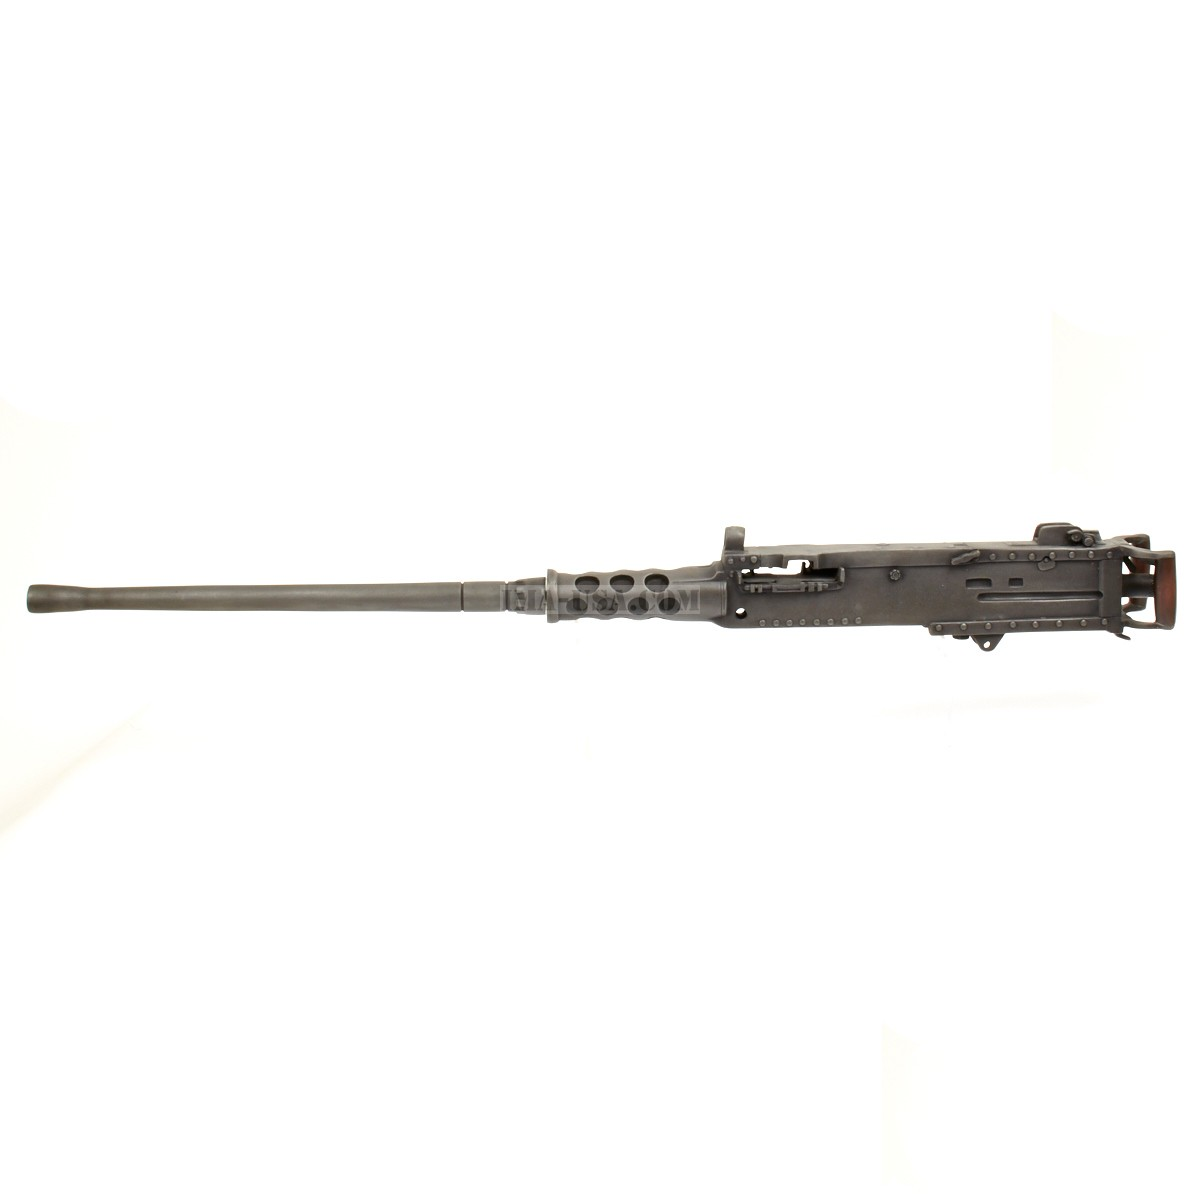 M2 Browning Pics, Weapons Collection